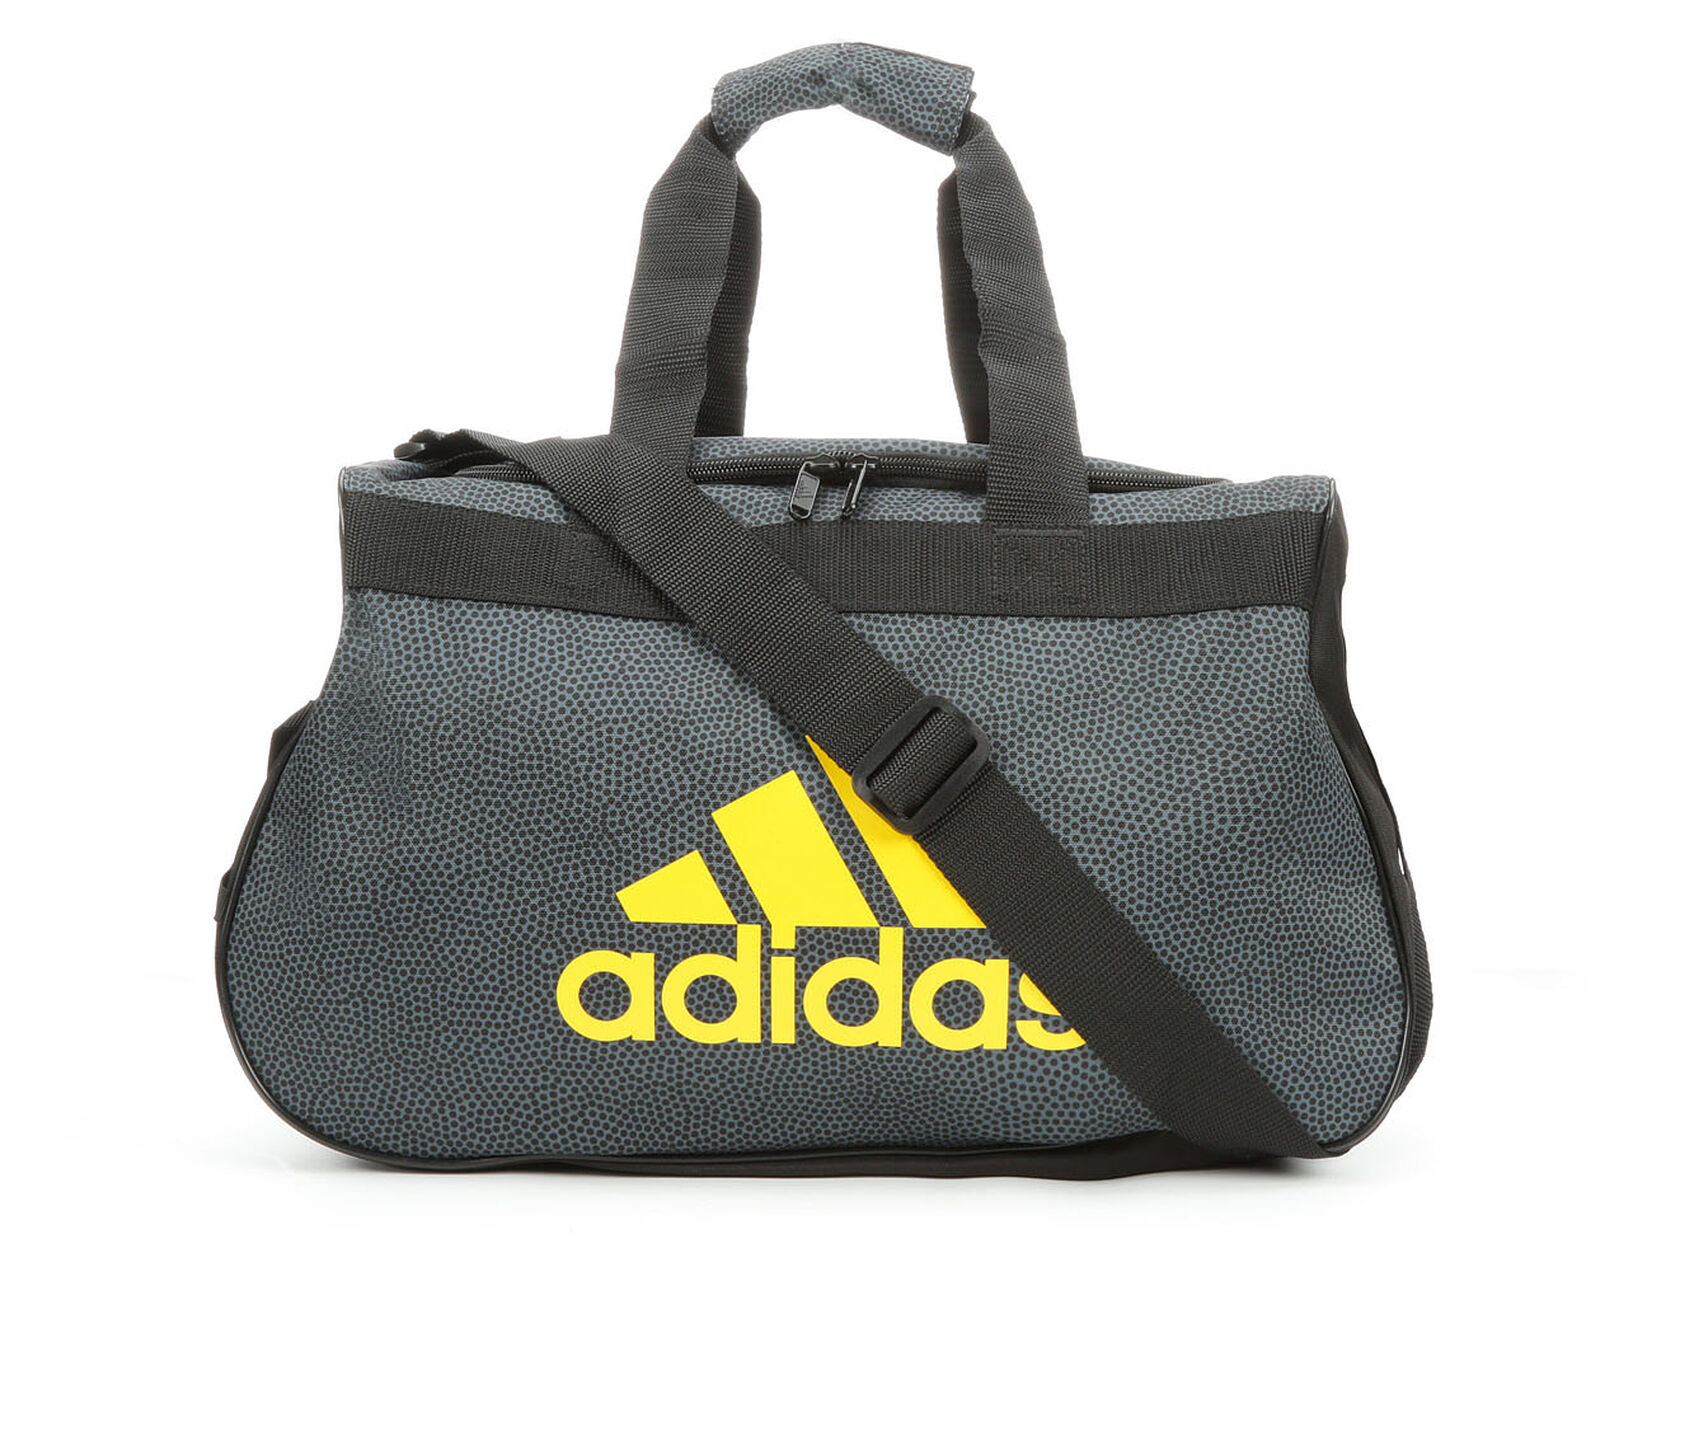 13225b7b5 Adidas Gym Bags With Shoe Compartment | Sabis Bulldog Athletics